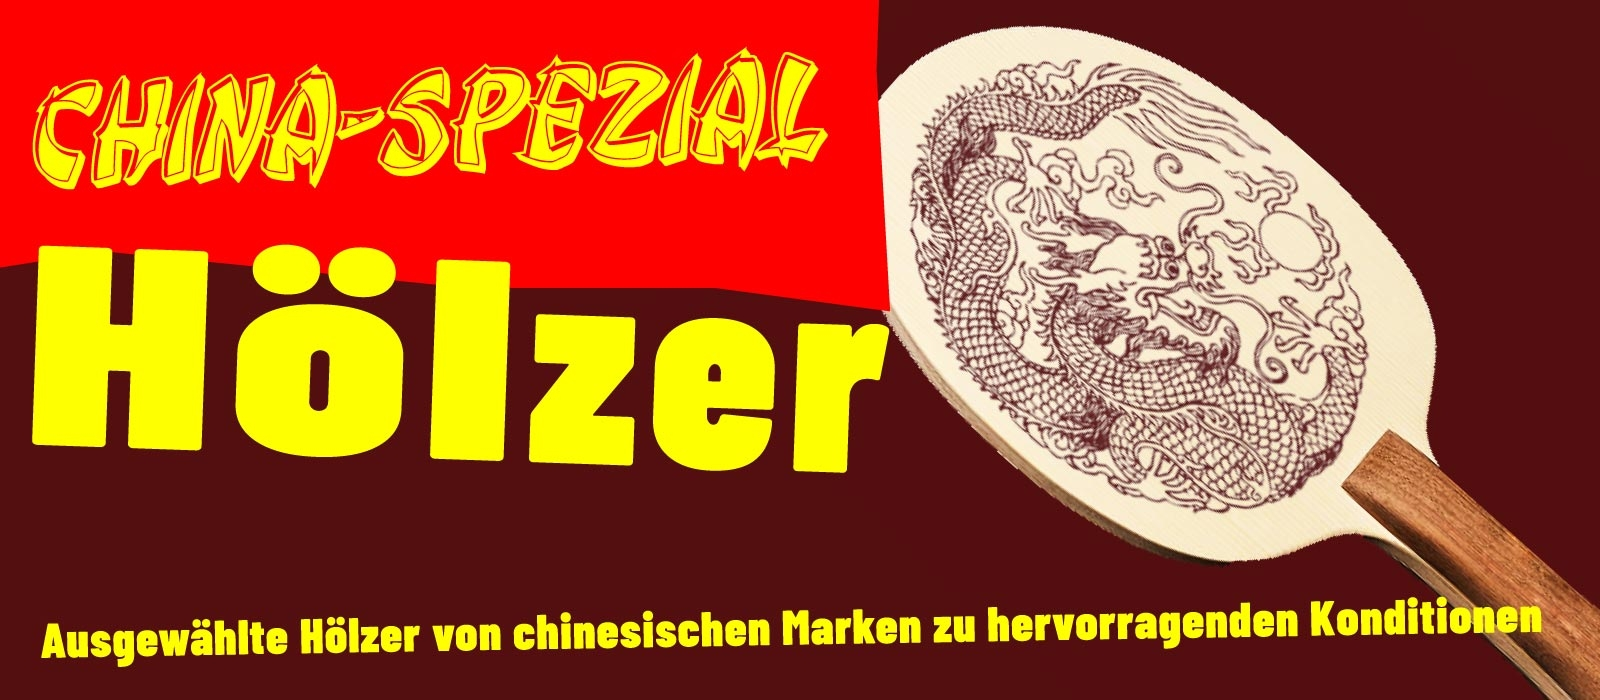 China-Spezial Hölzer - Def - All